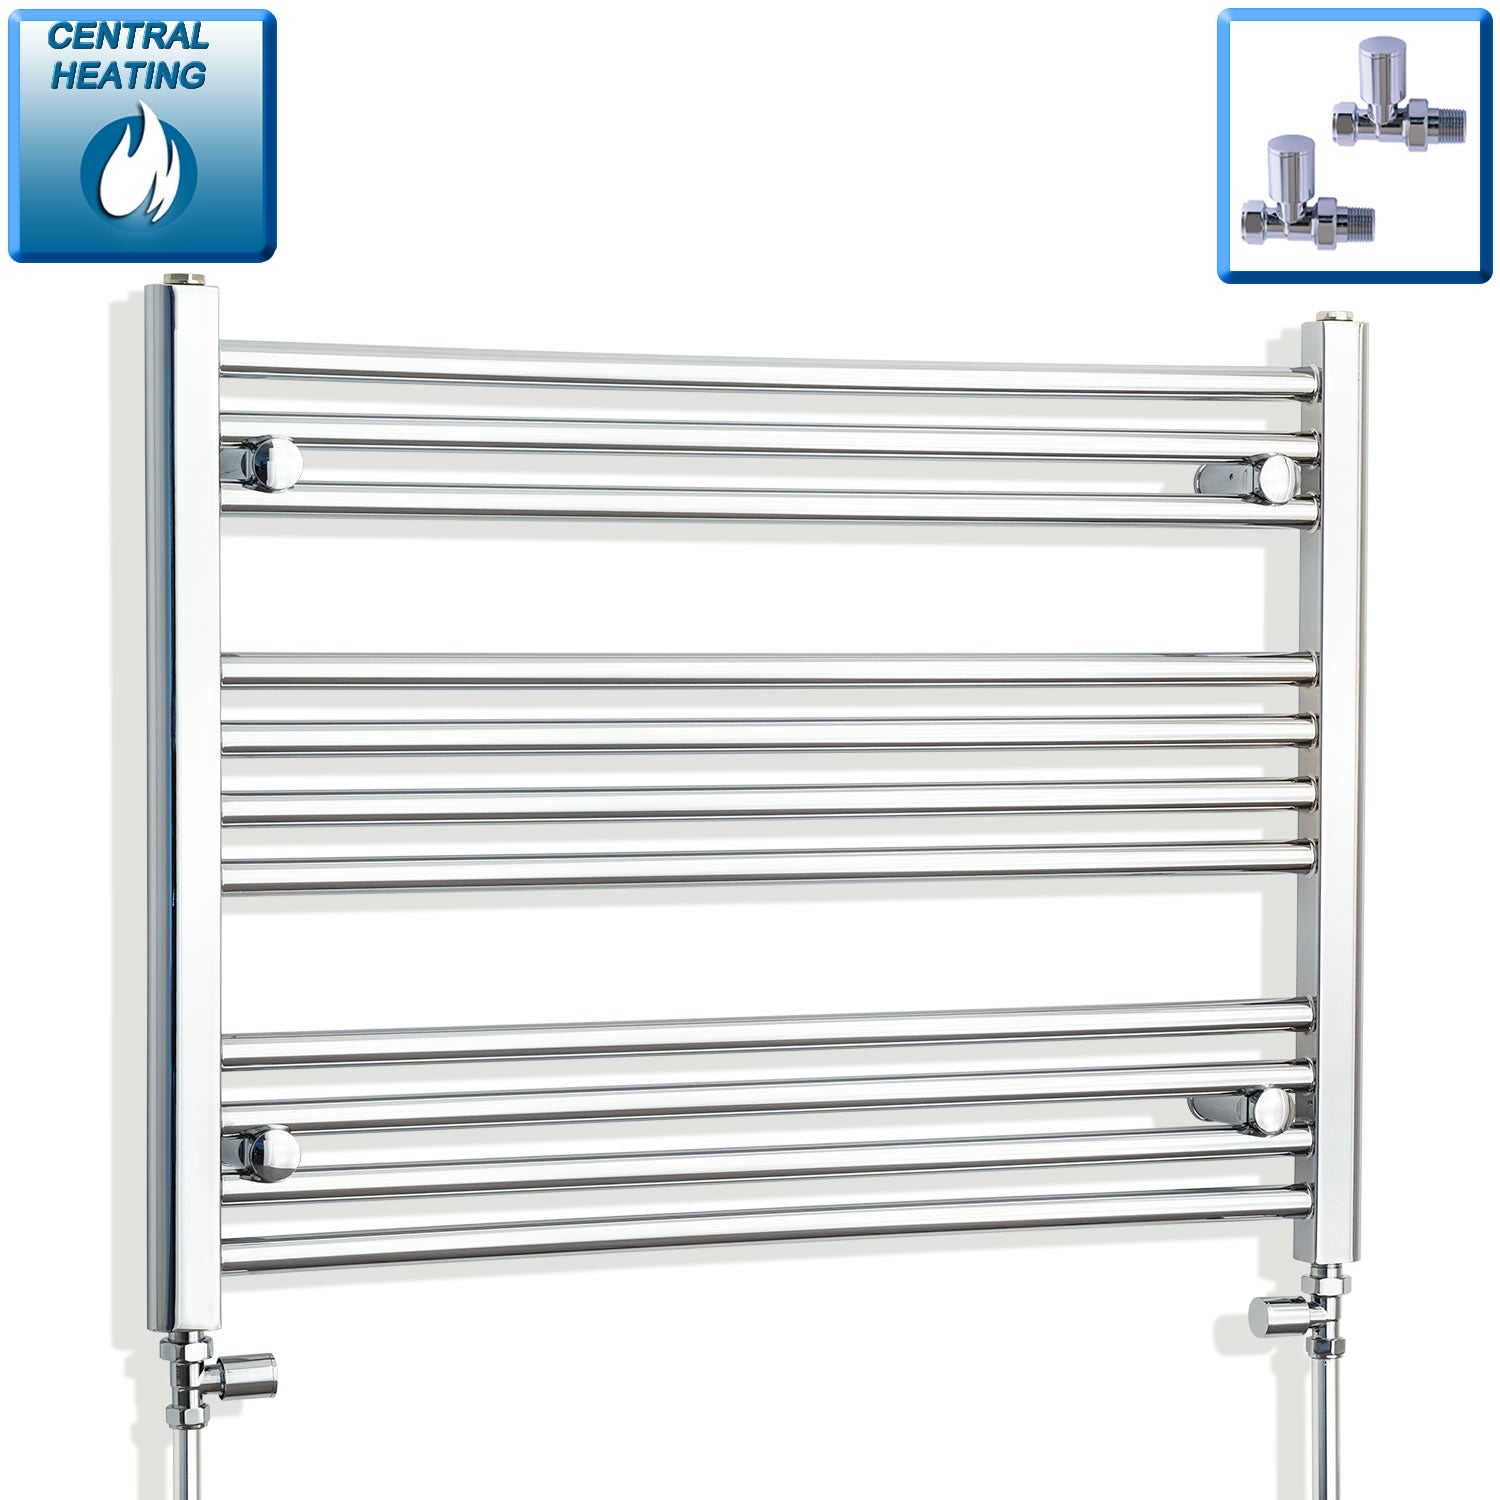 750mm Wide 600mm High Chrome Towel Rail Radiator With Straight Valve